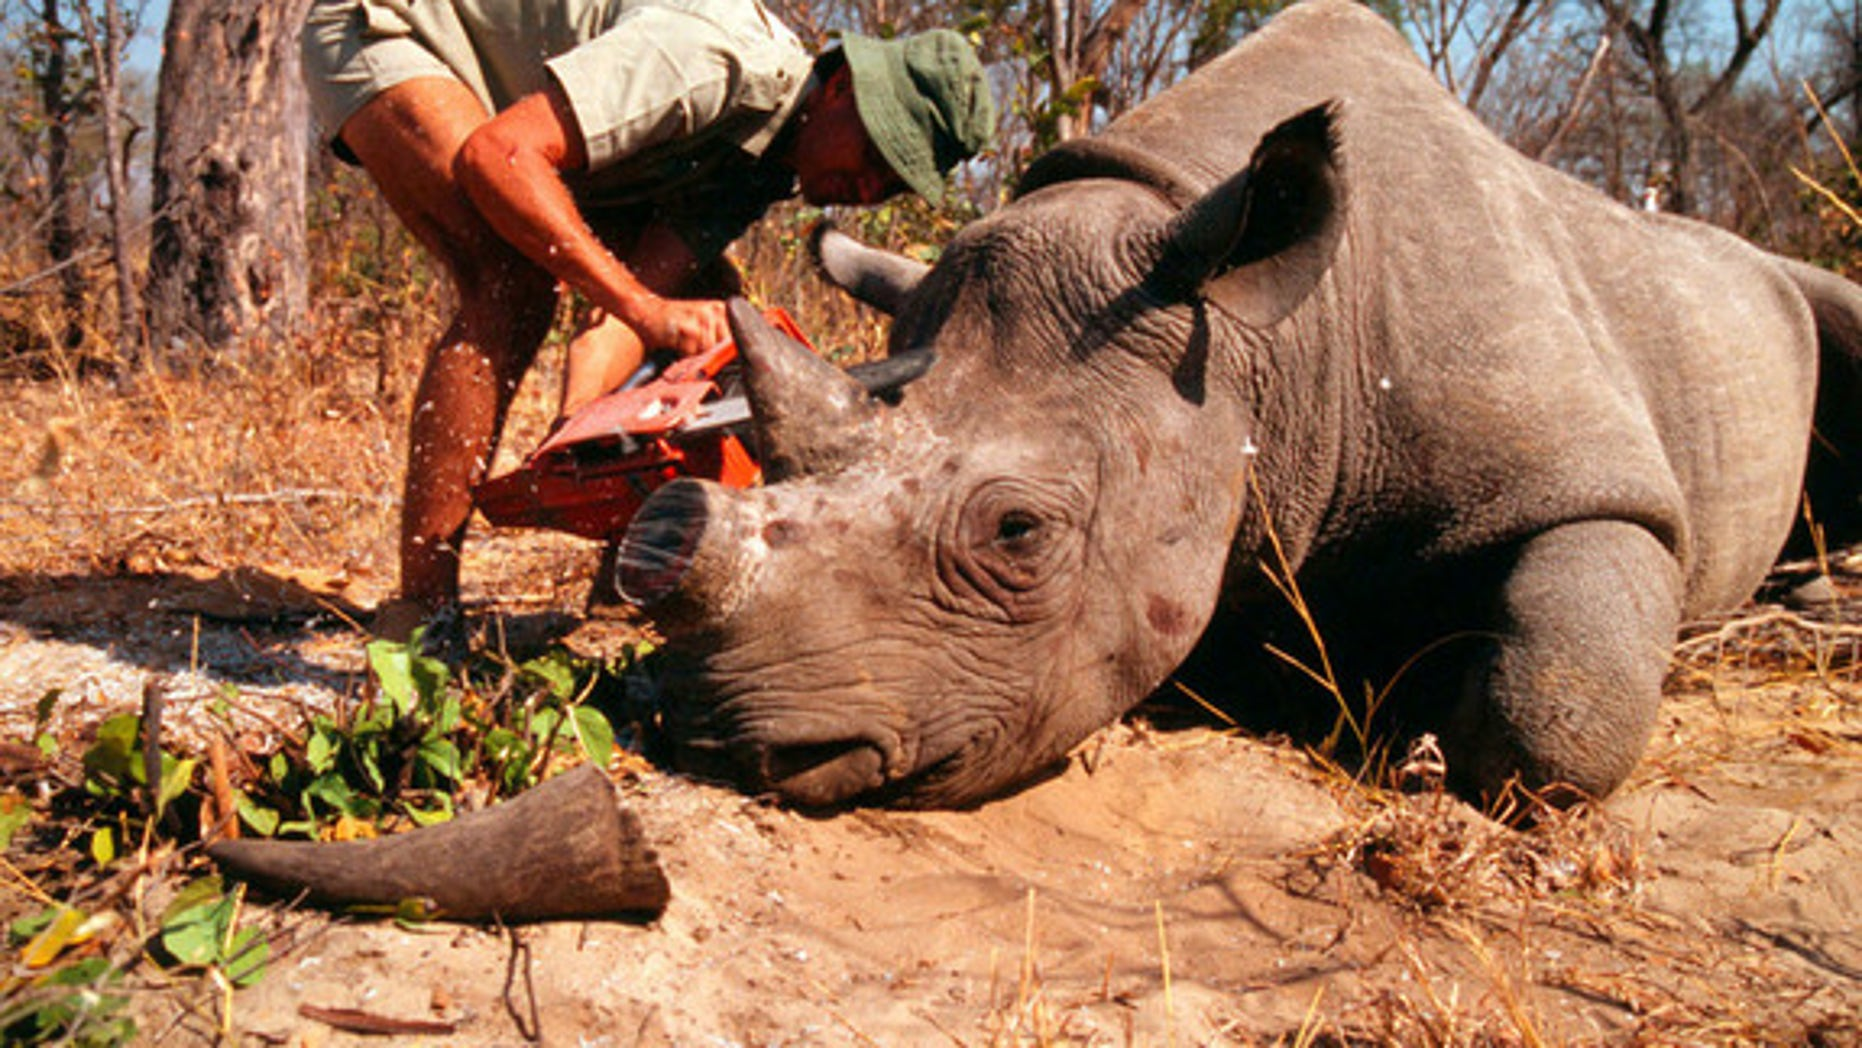 Dehorning of a rhinoceros by a field researcher